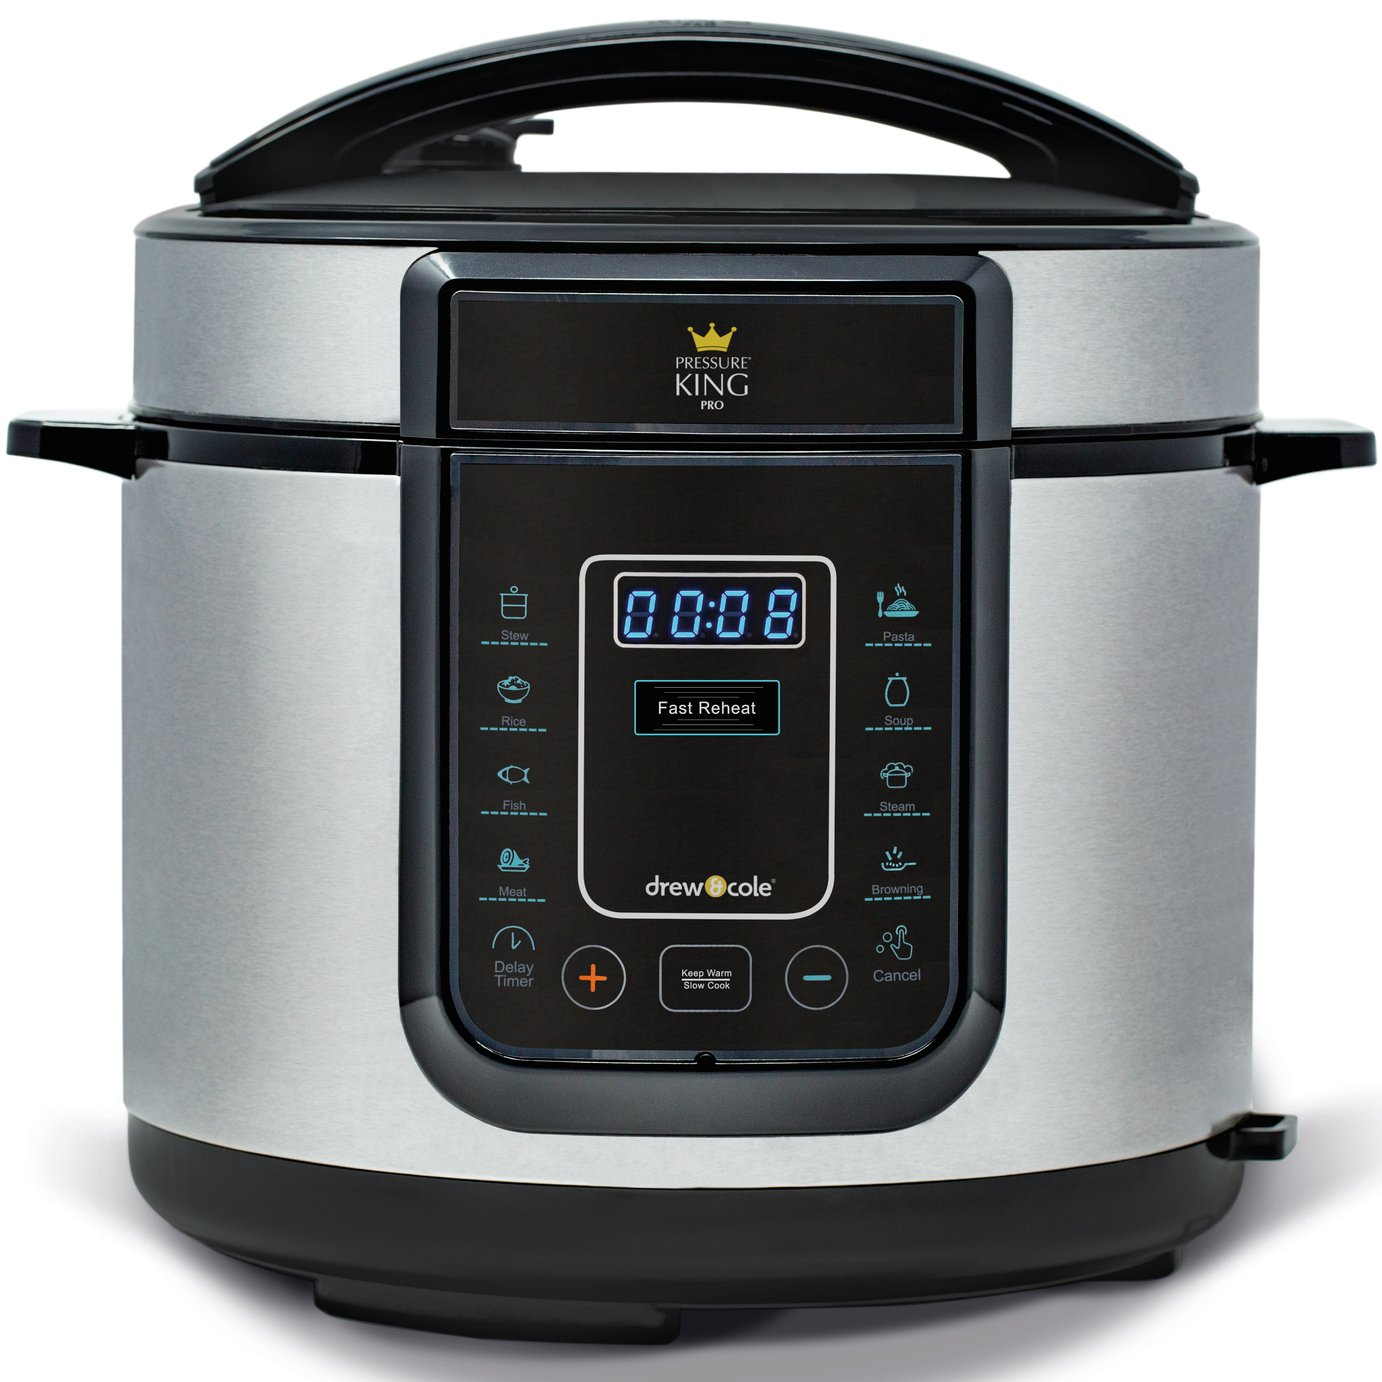 Image of Pressure King Pro - Electrical - Pressure Cooker